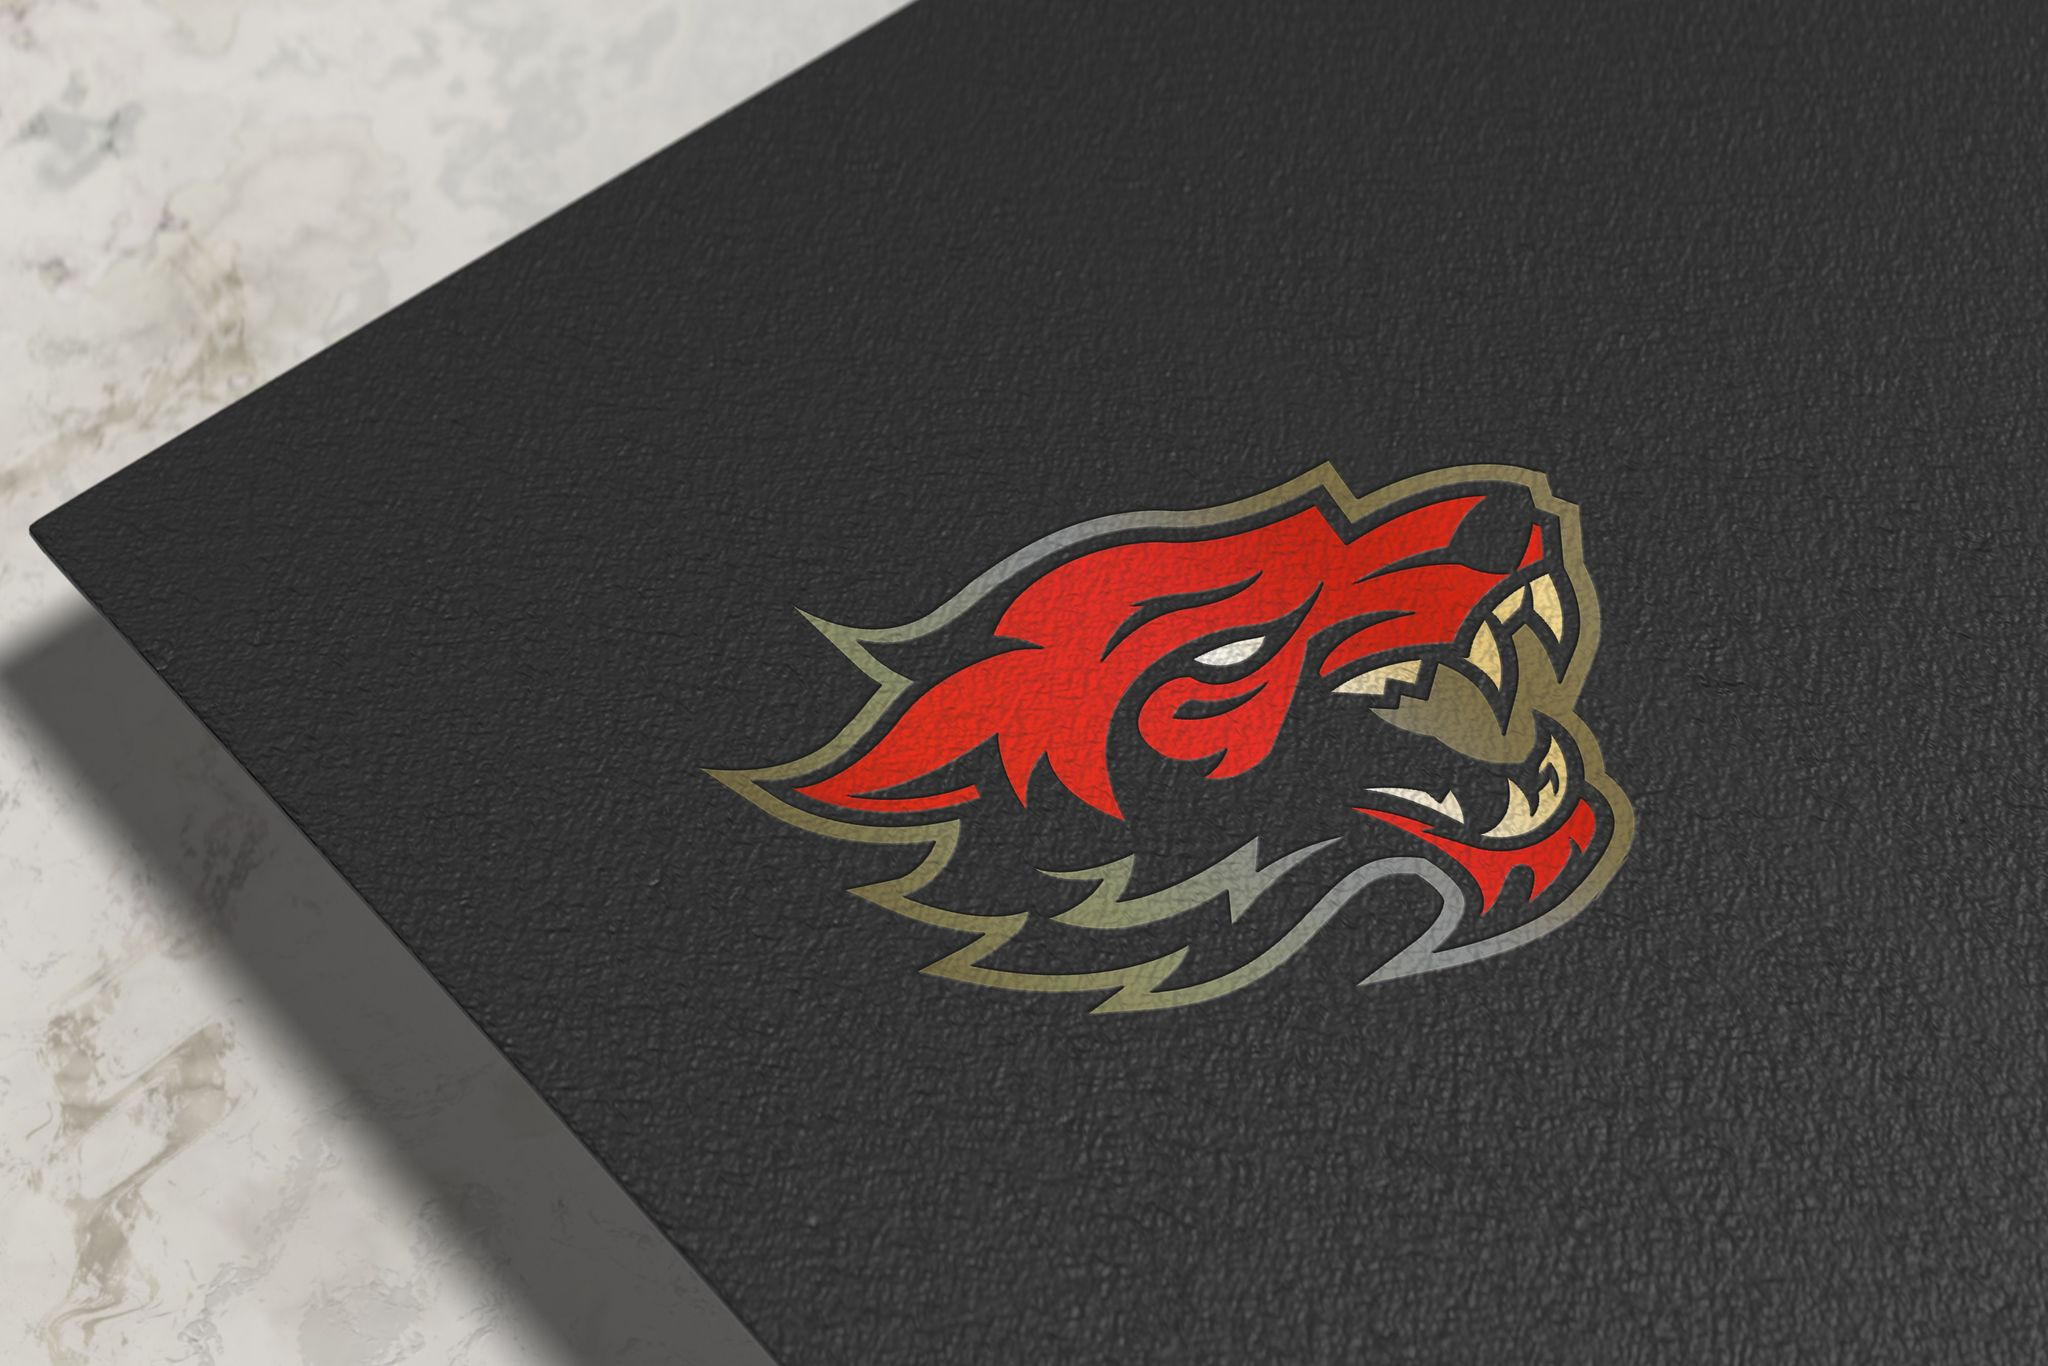 I will do realistic mockup for you design or logo 5 image